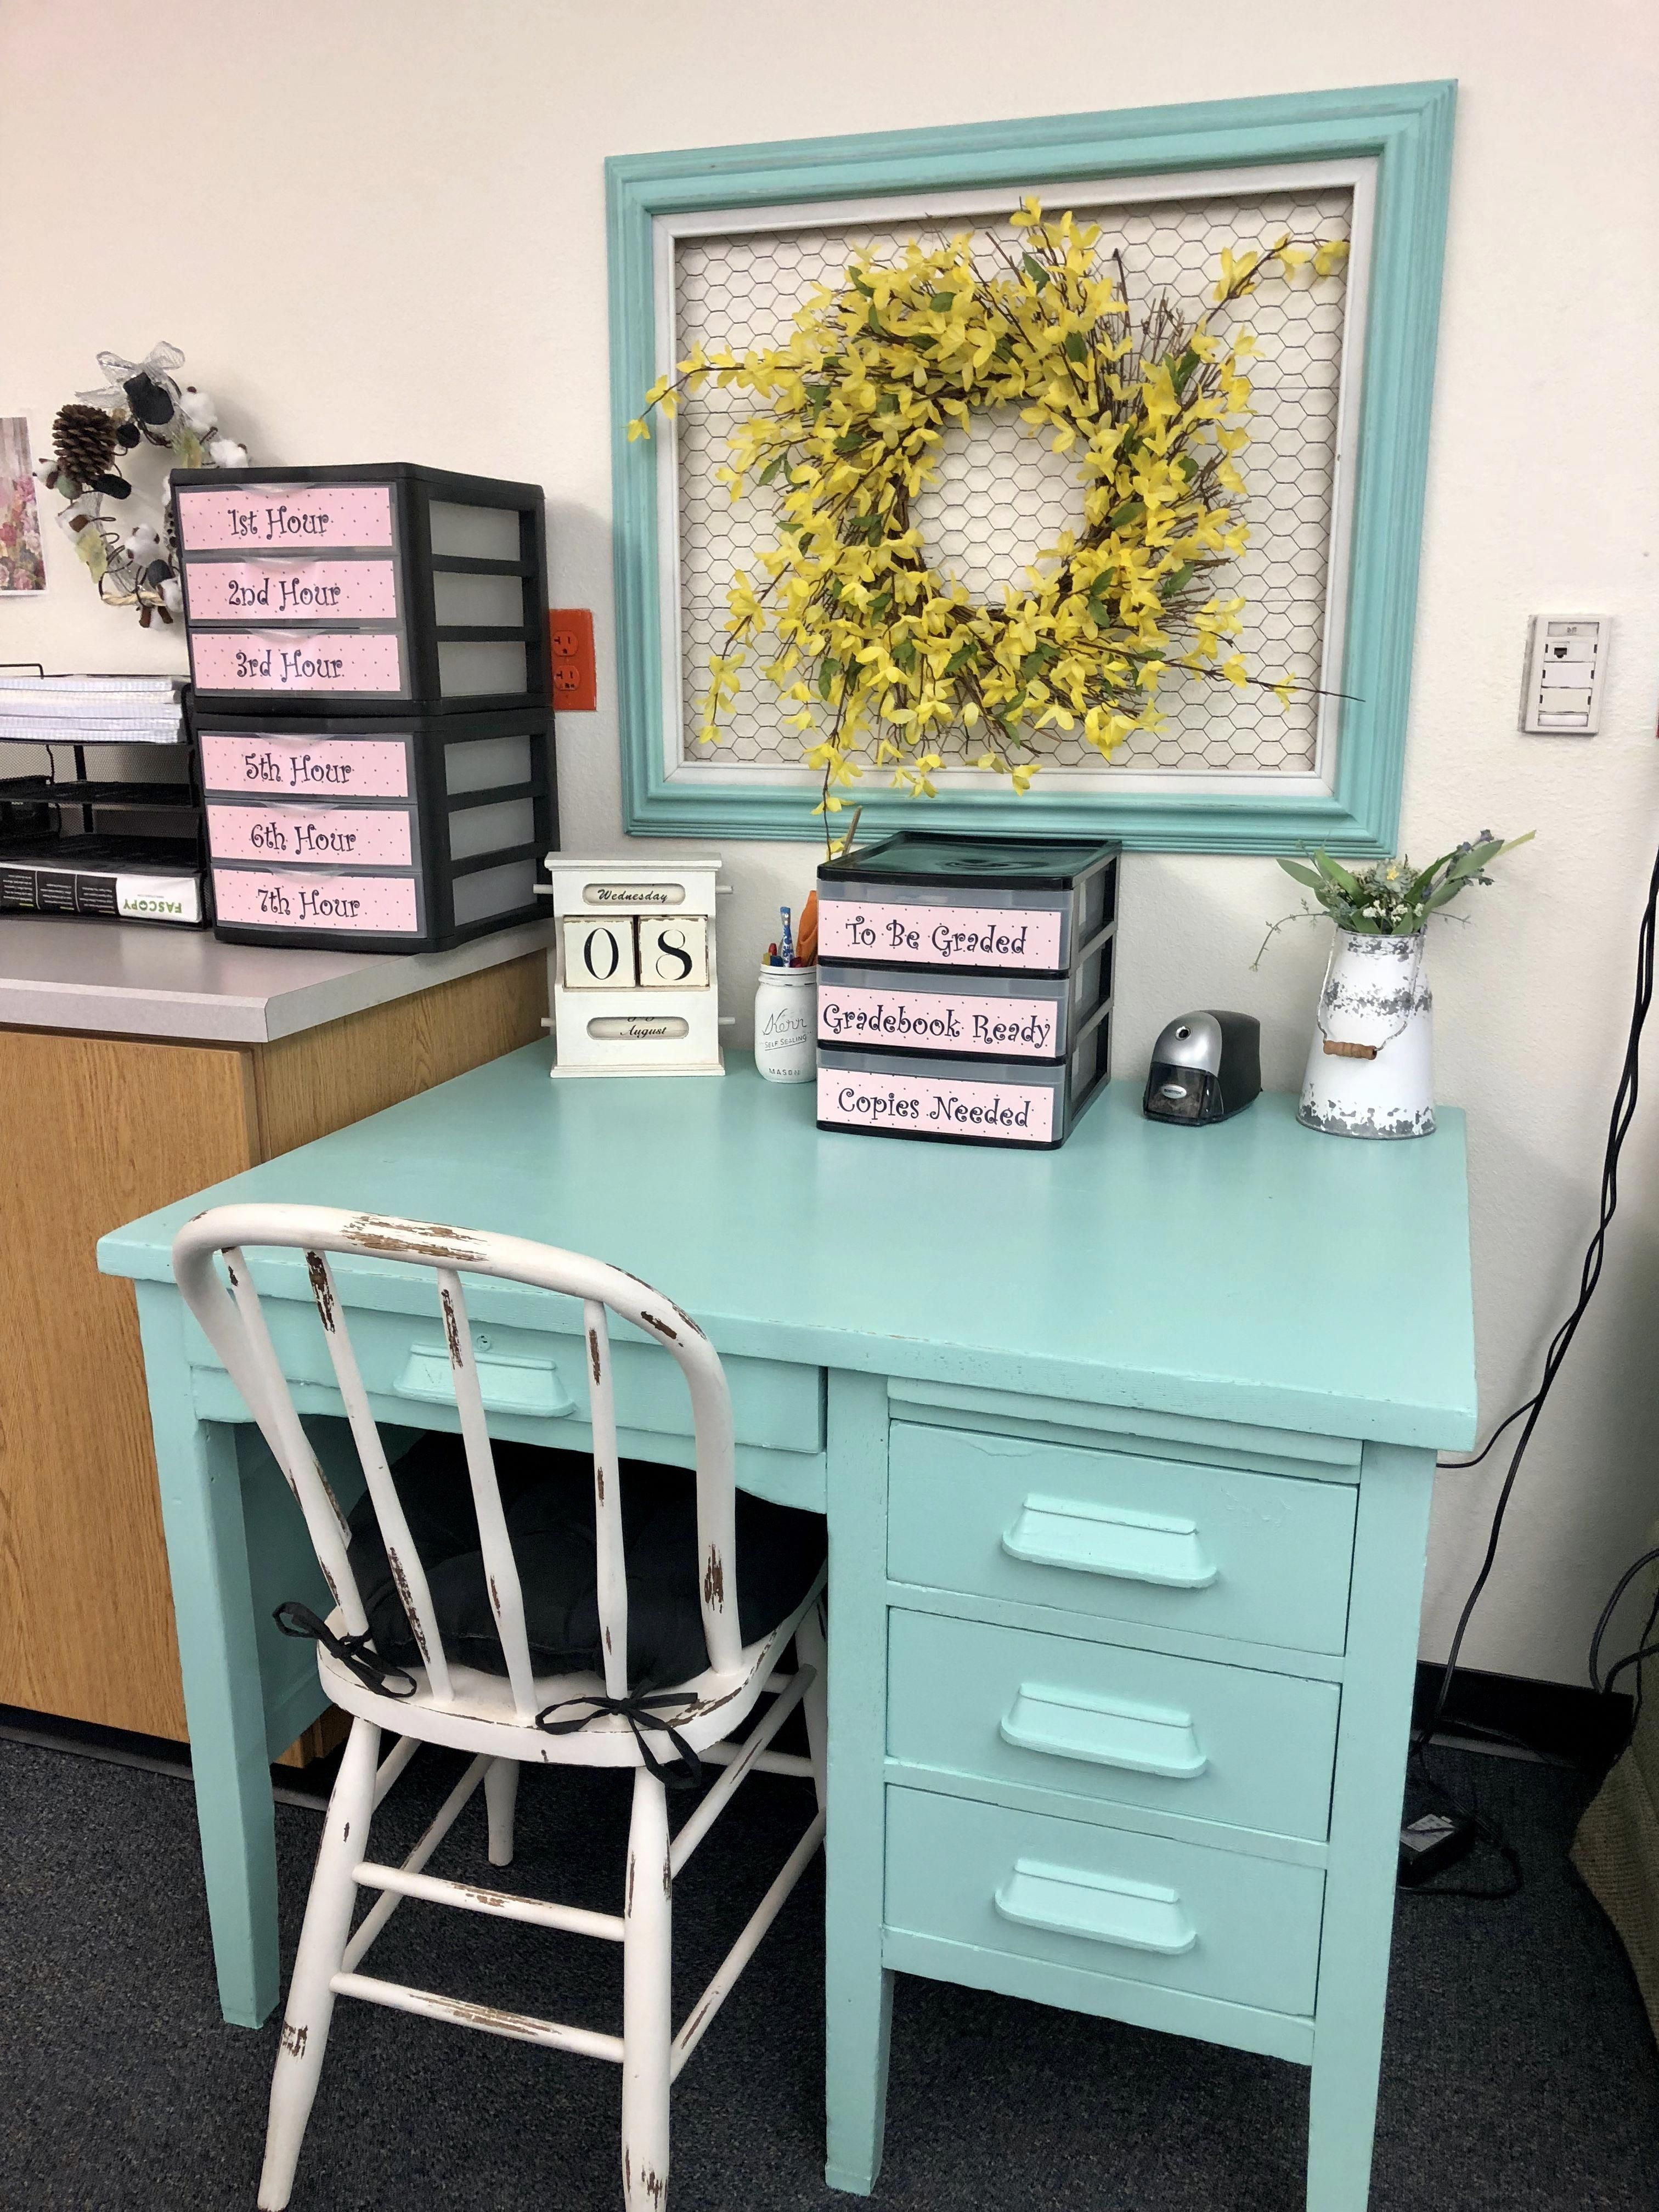 My student aides desk area for grading, sorting, filing and working on homework at.  Farmhouse classroom decor.